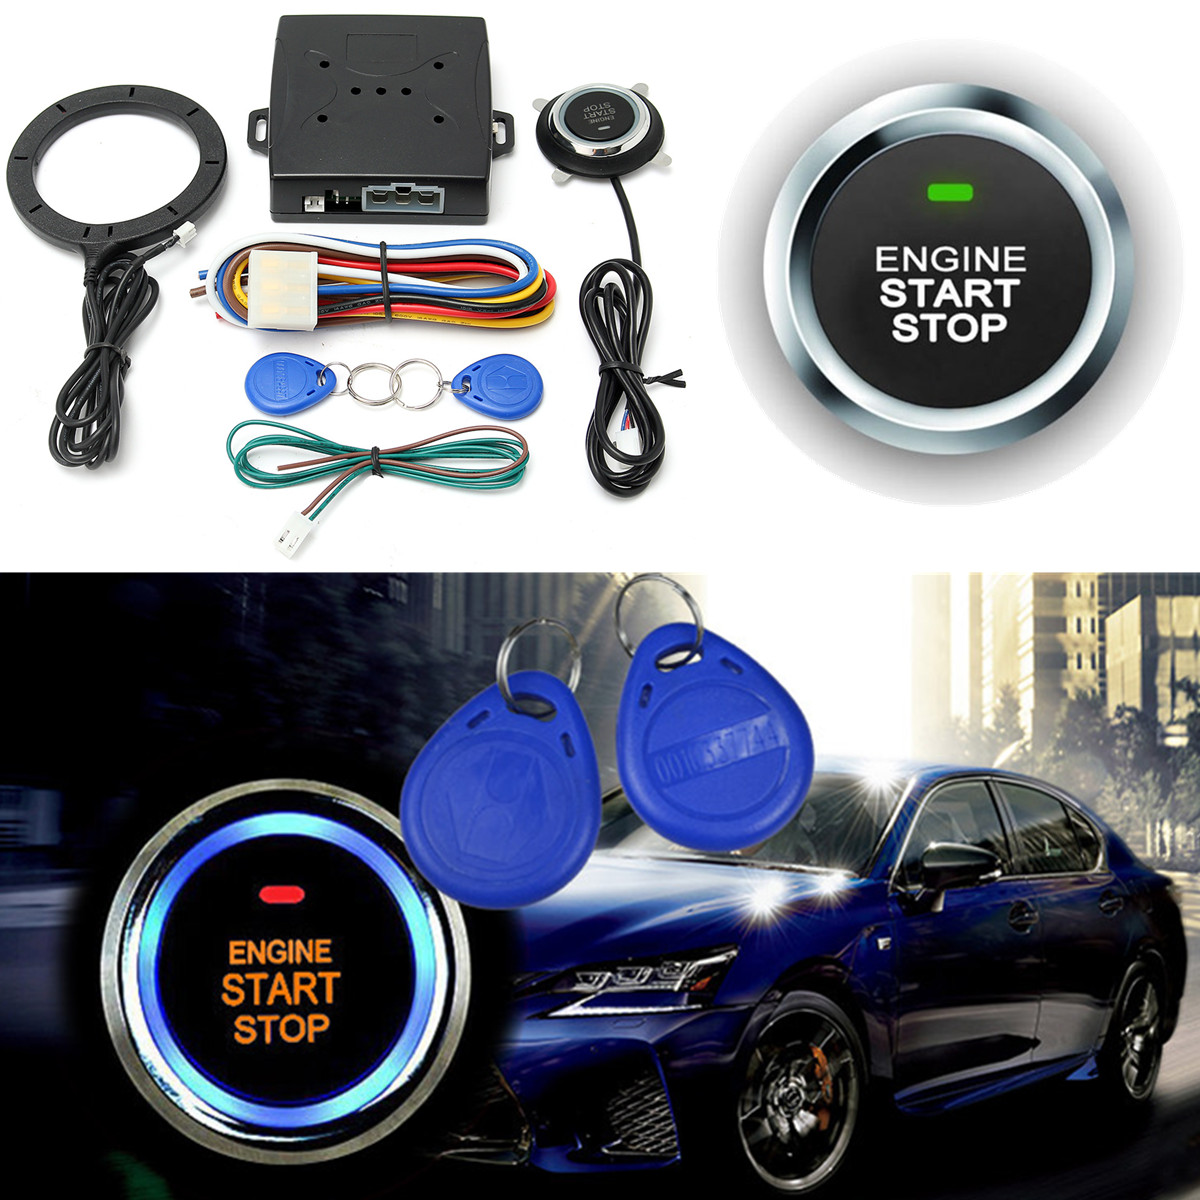 12V Car Engine Push Start Button Remote Control RFID Lock Ignition Starter Kit Hnad Brake Testing Interface Alarm Keyless Entry